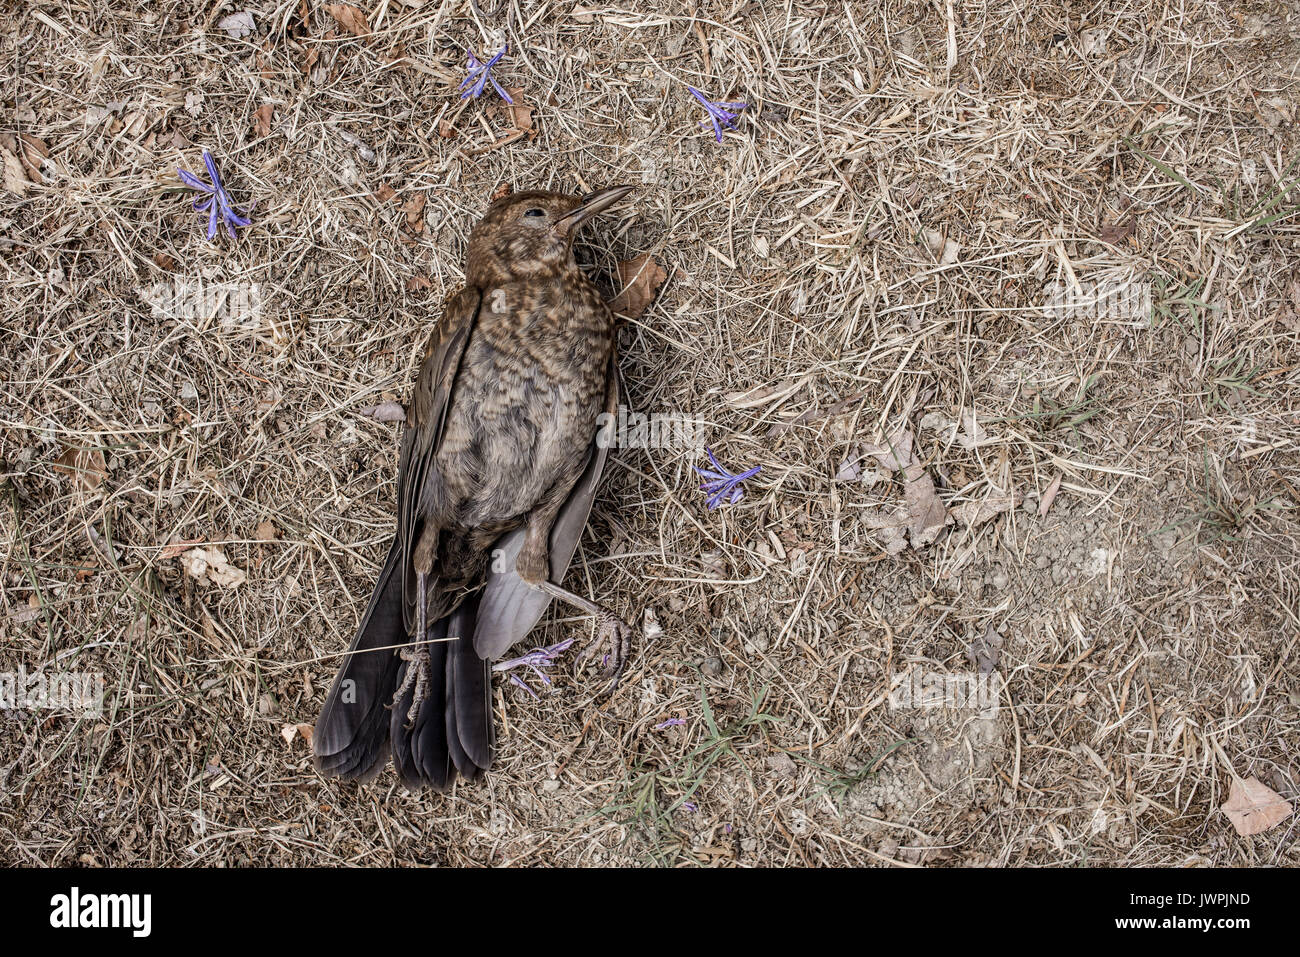 Young common blackbird (Turdus merula) dead on a background of dried grass and violet flowers - Stock Image